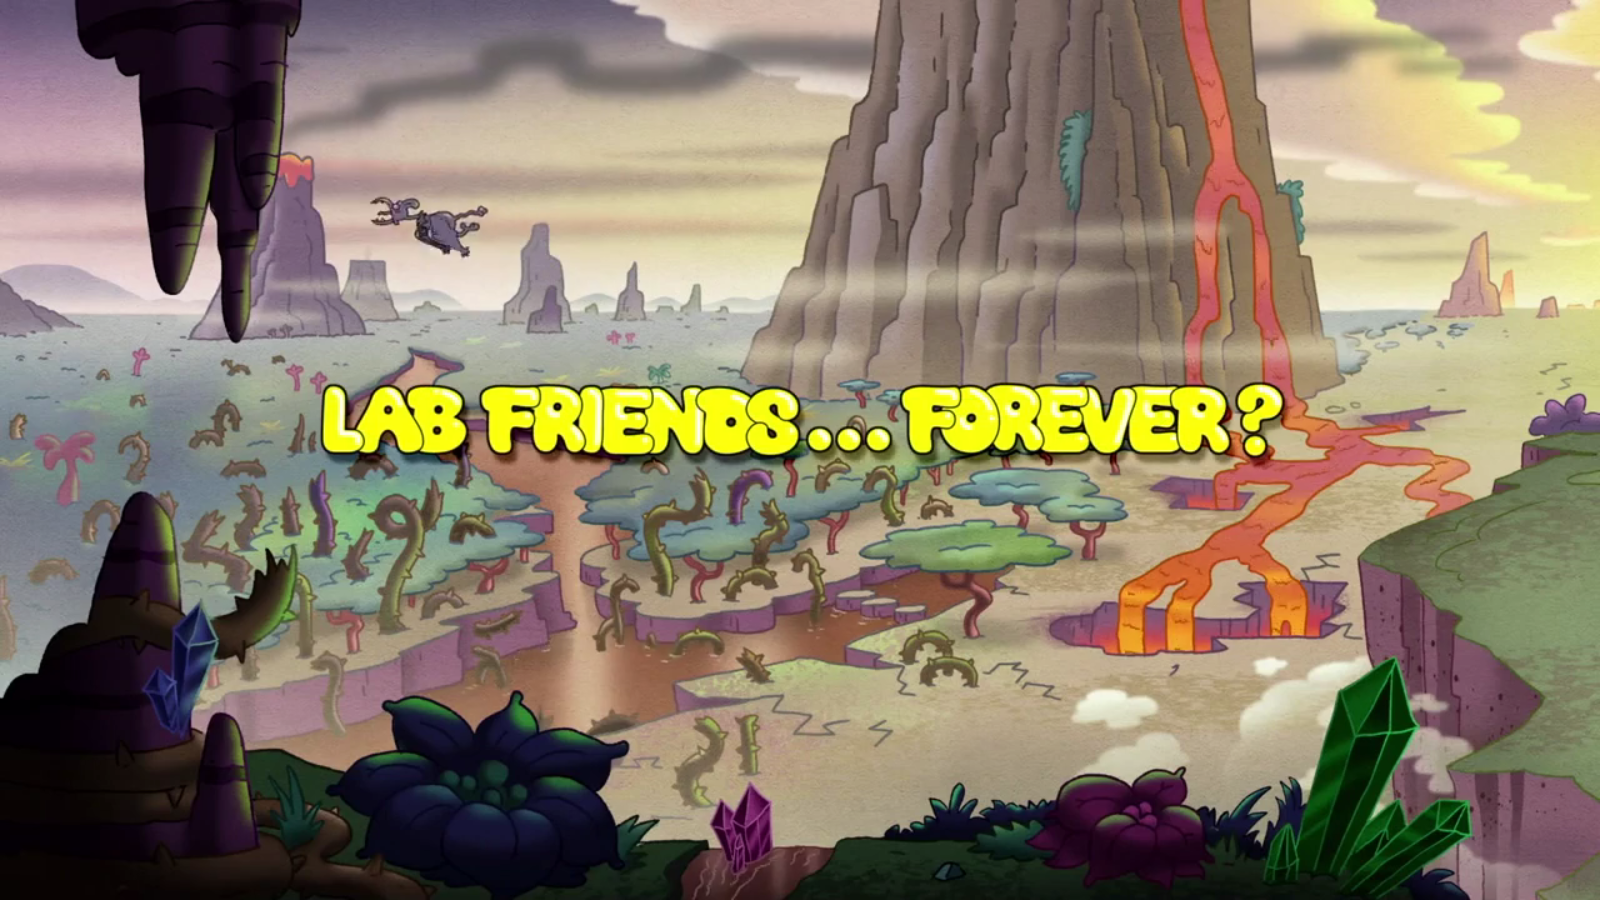 Lab Friends... Forever?